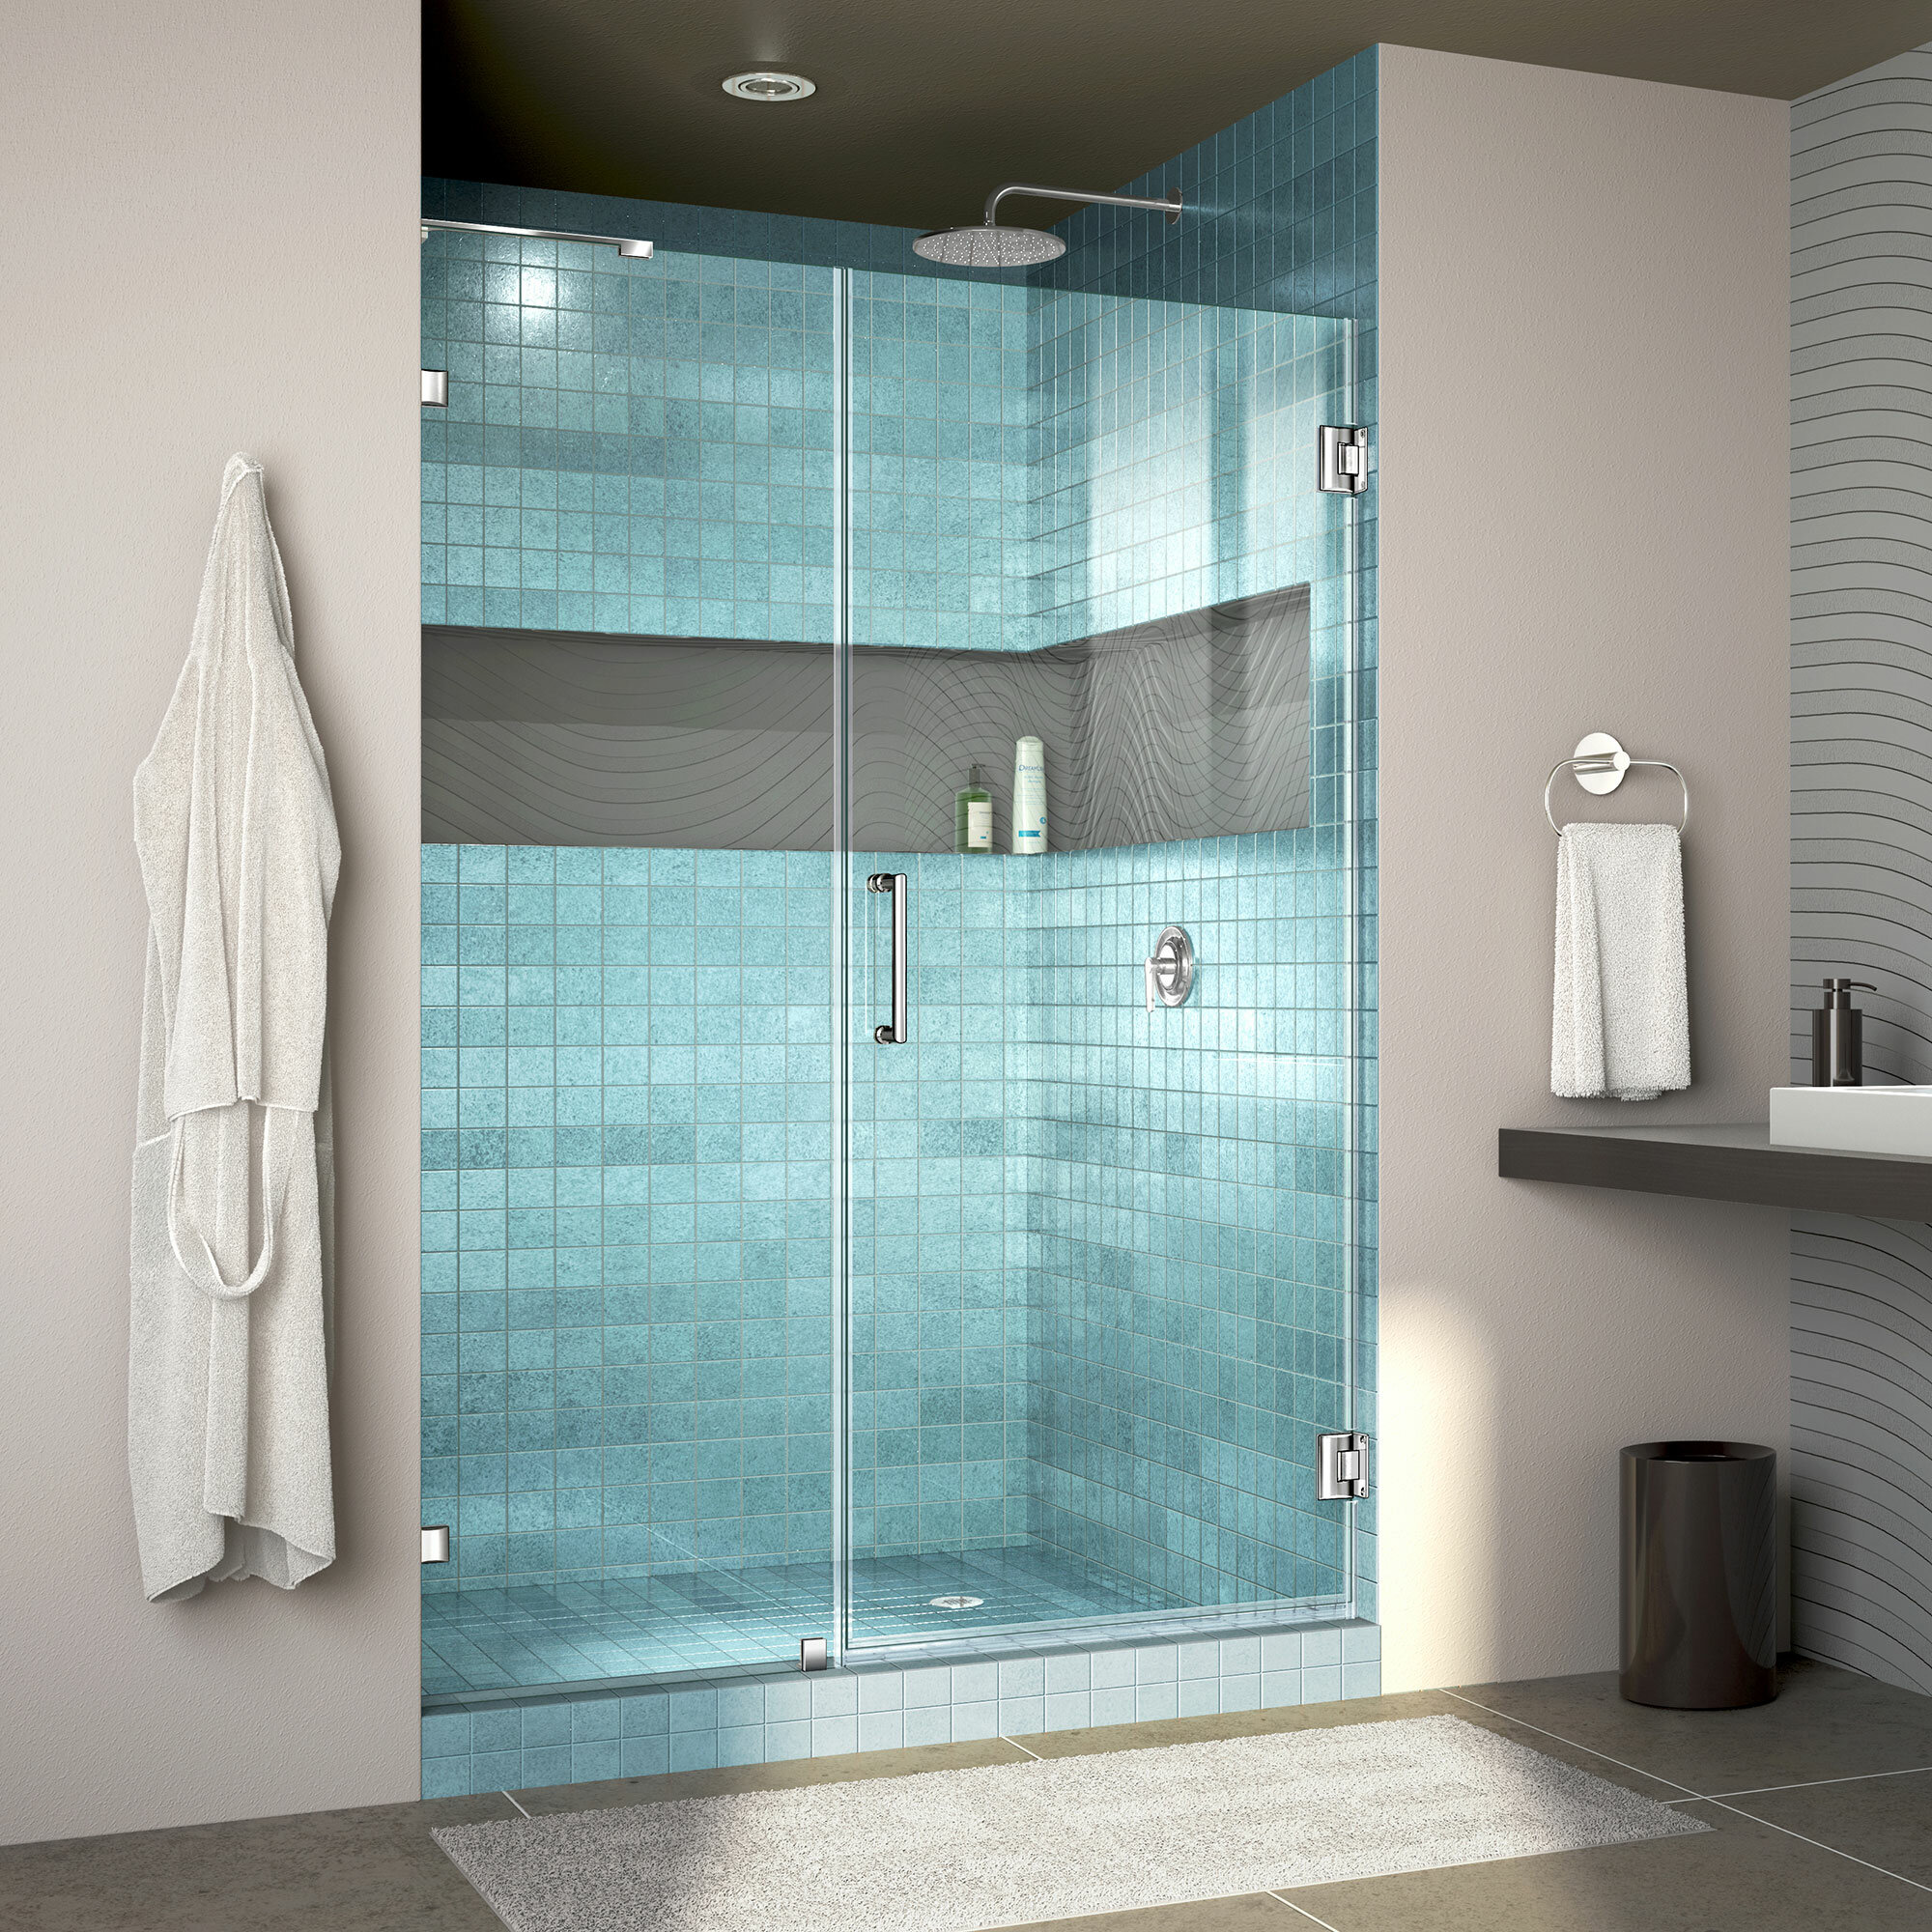 Unidoor Lux 48 X 72 Hinged Frameless Shower Door With Clearmax Technology